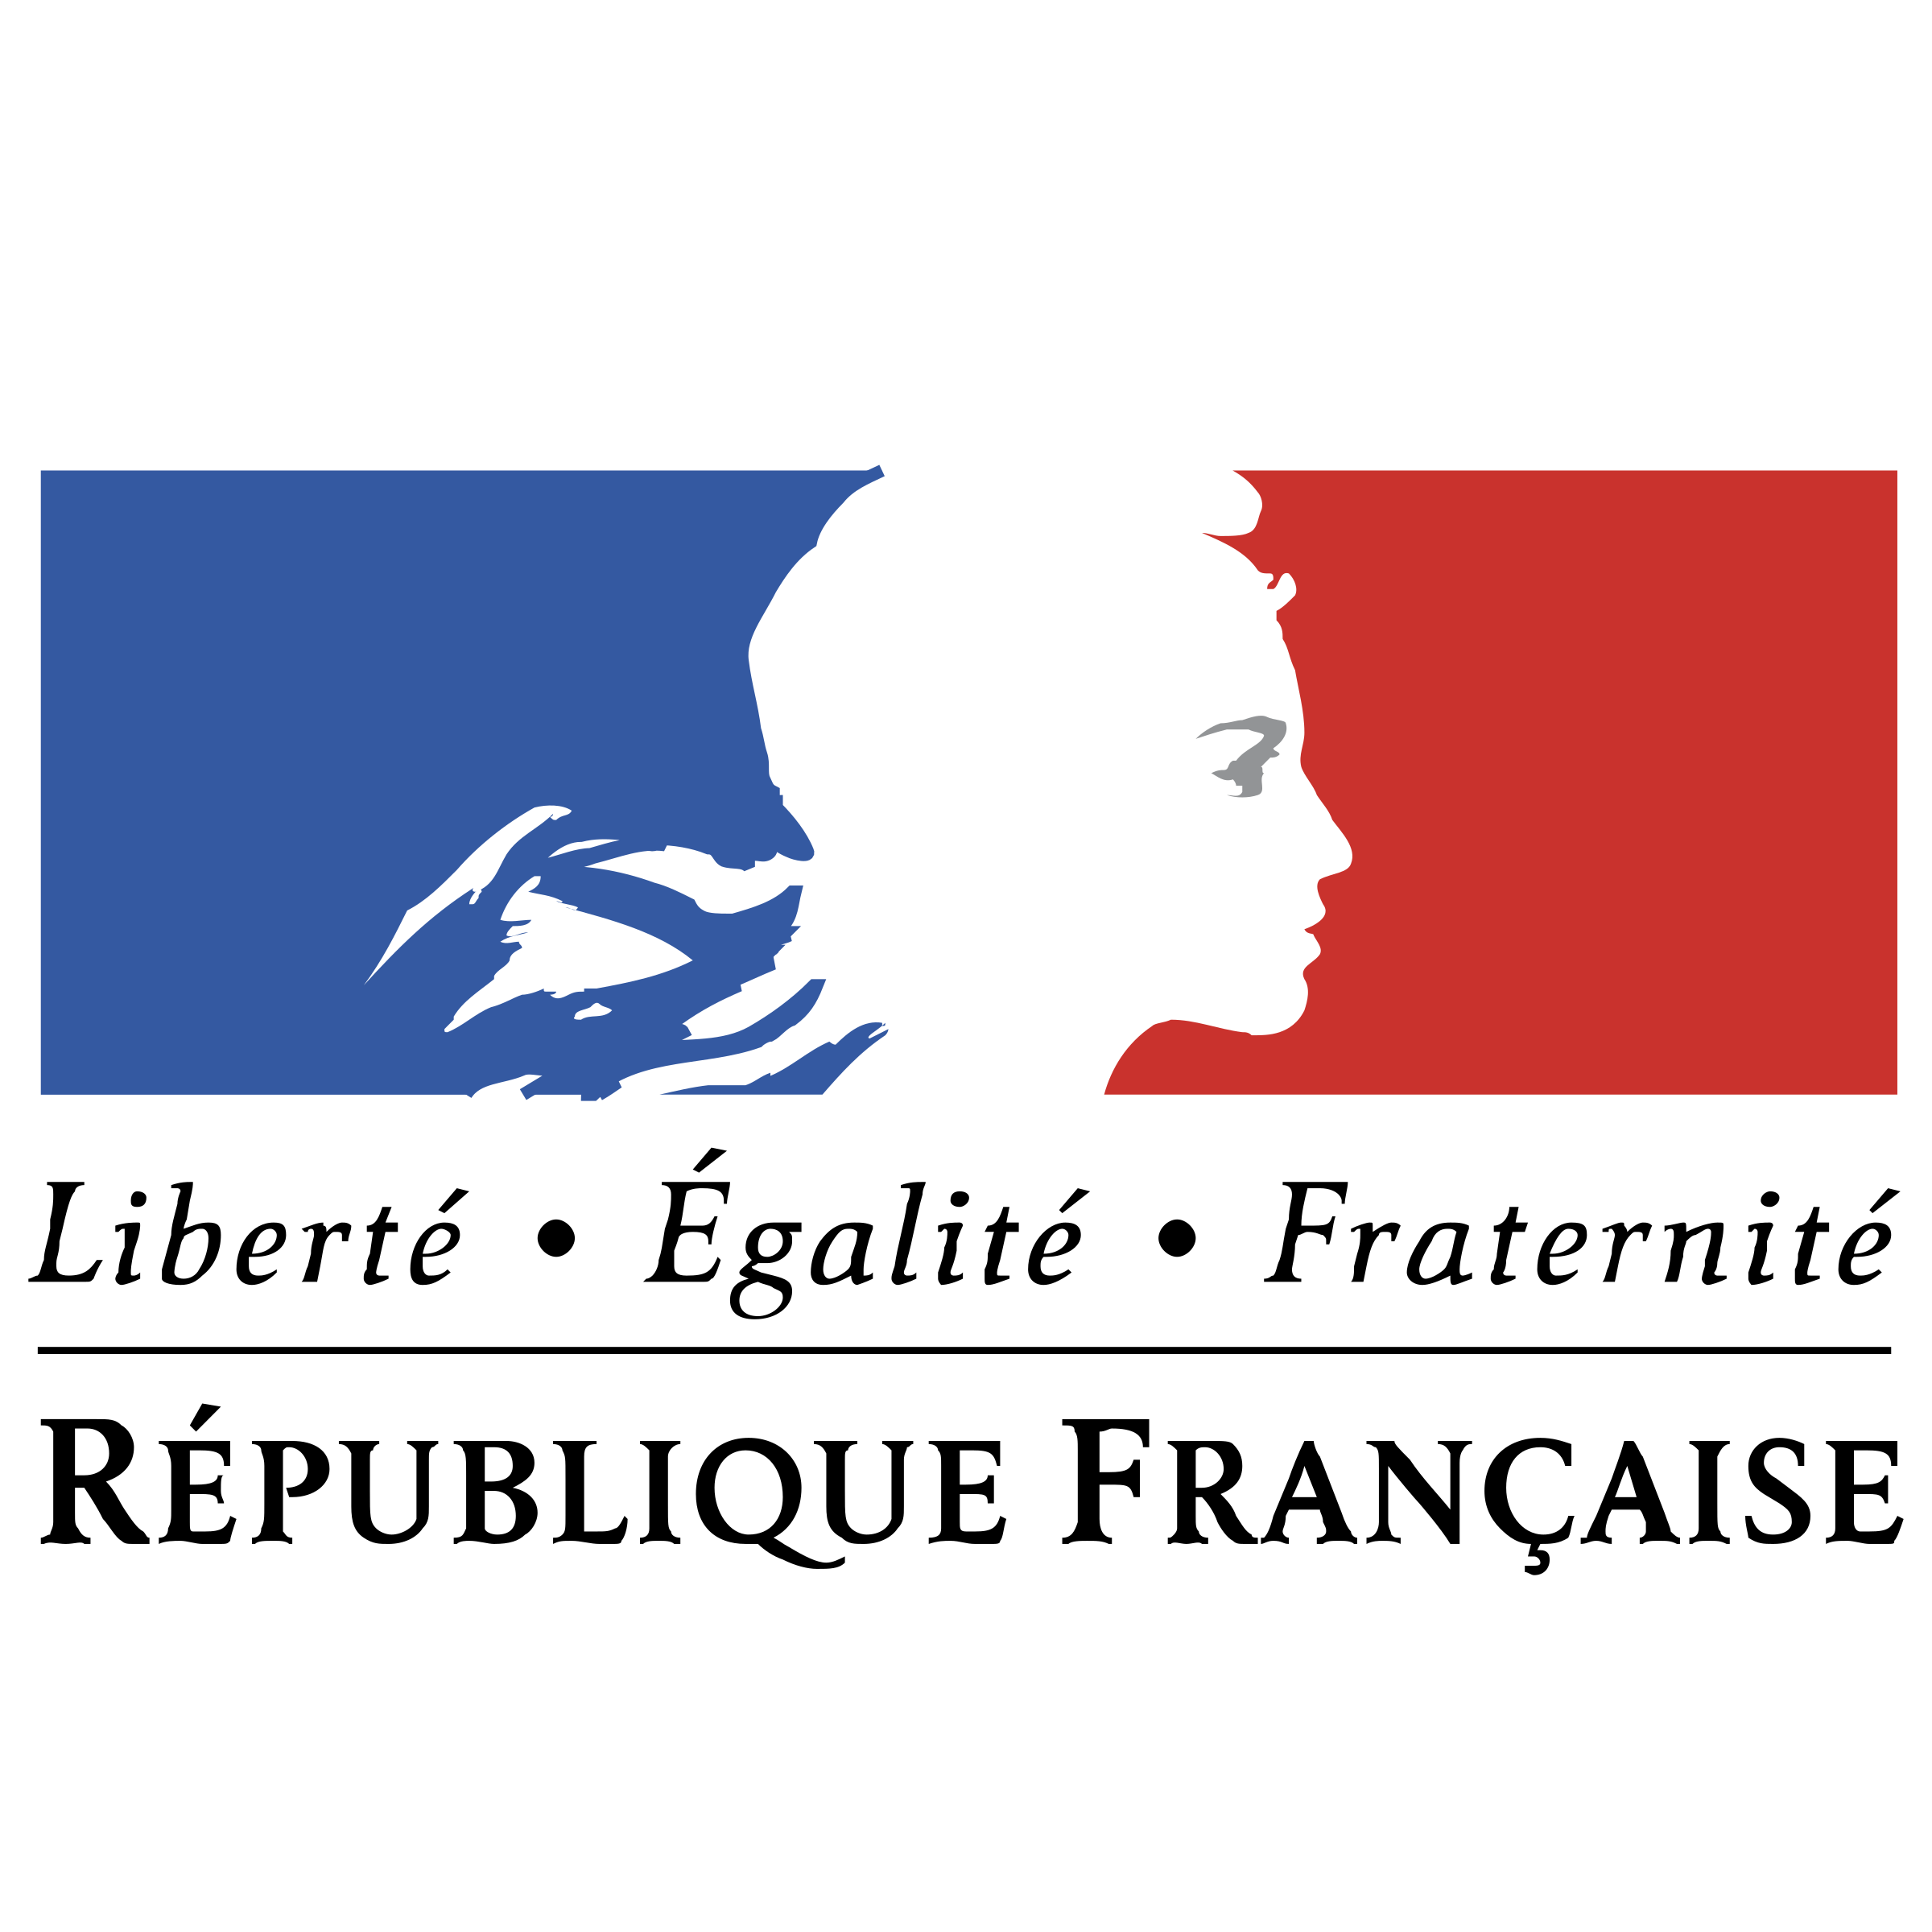 republique francaise logo png transparent